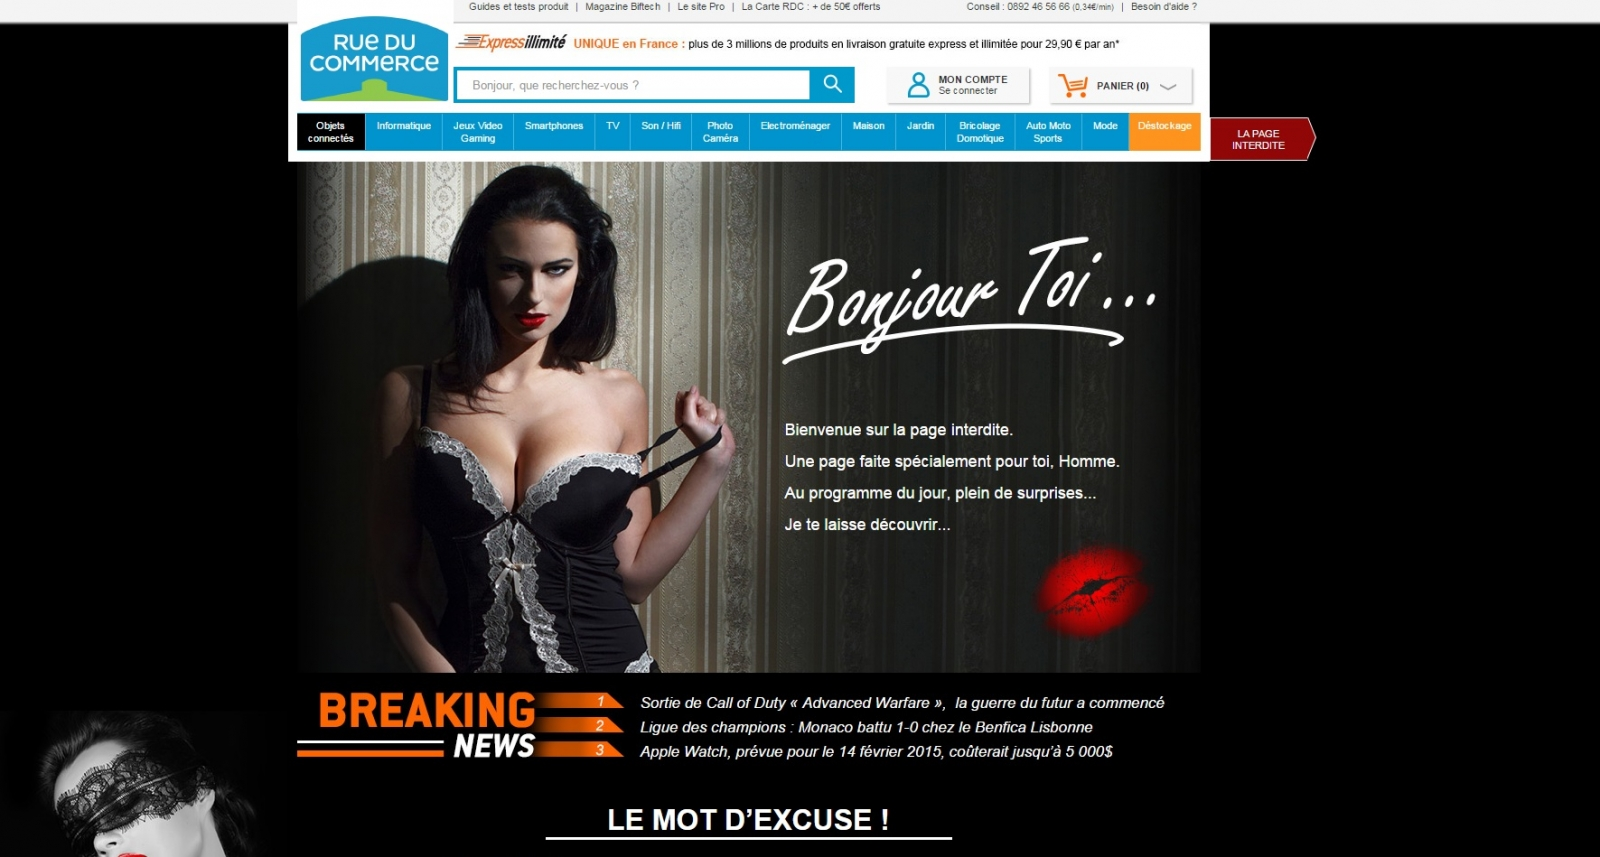 Rue du Commerce: French E-Commerce Company Bans Women in 'Sexist' Ad Campaign